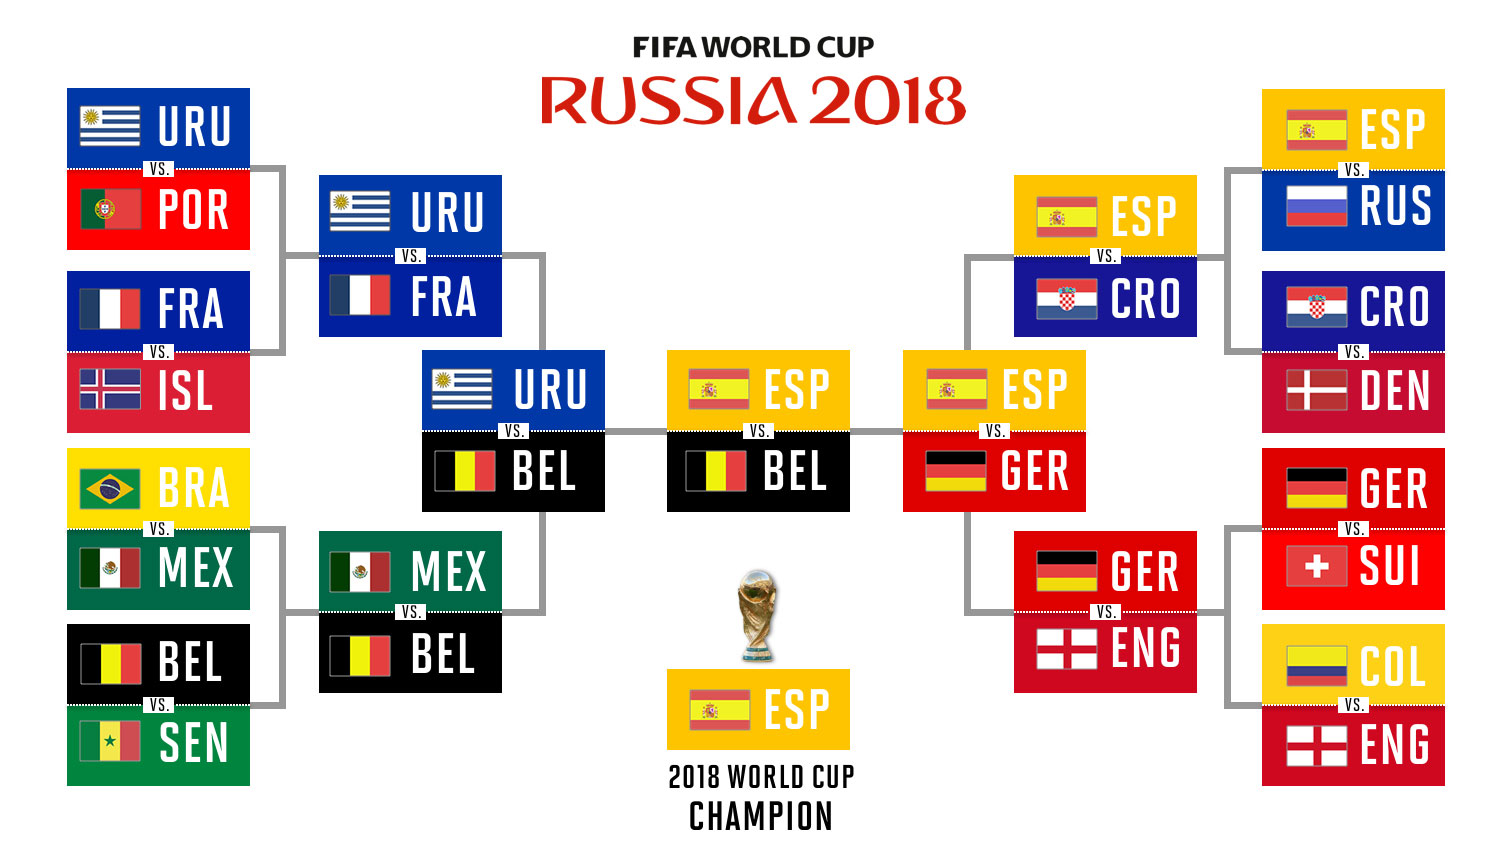 Predictions for the 2018 World Cup in Russia